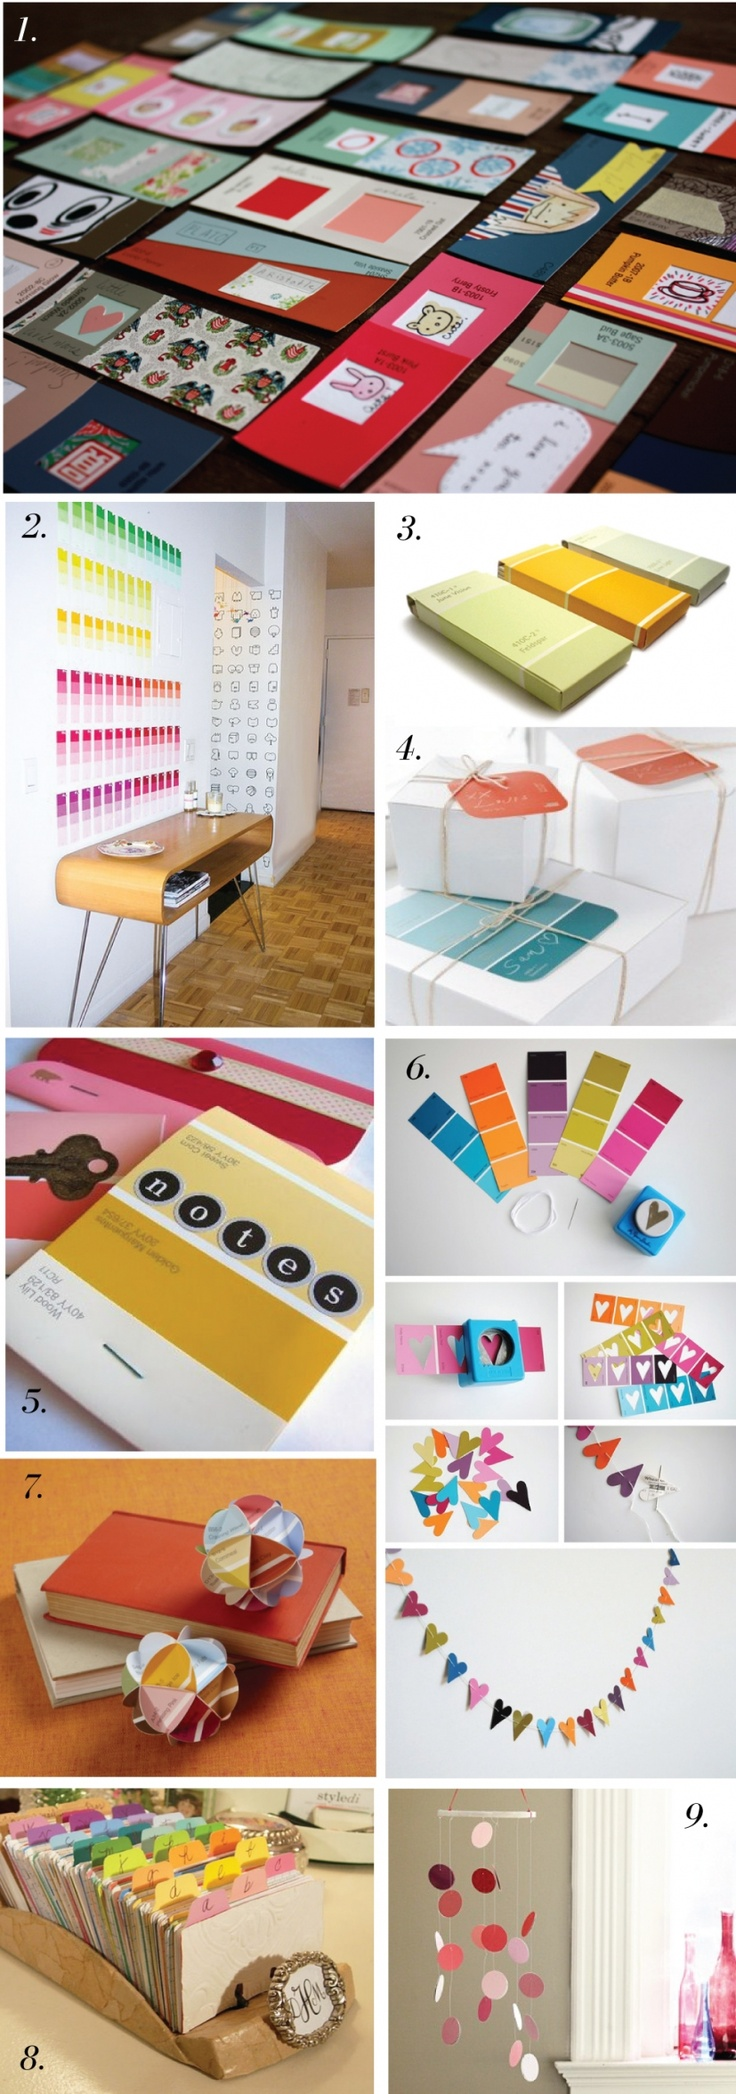 best d i y images on pinterest crafts creative ideas and